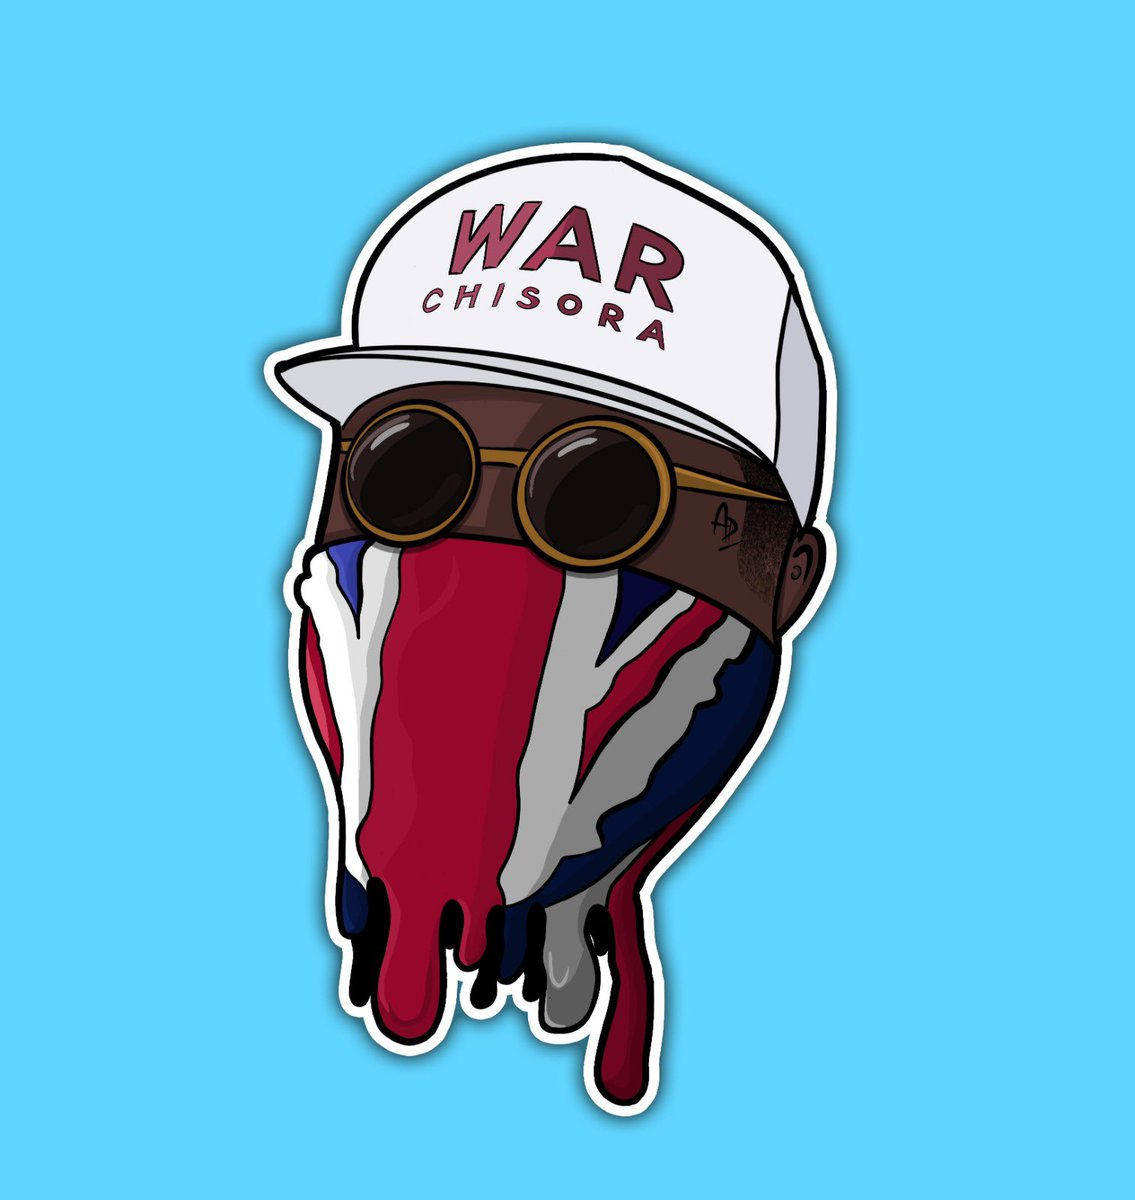 """""""In time of peace, prepare for war."""" #warchisora 📷 @AdamSouthwell https://t.co/aVfGUqzF7V"""